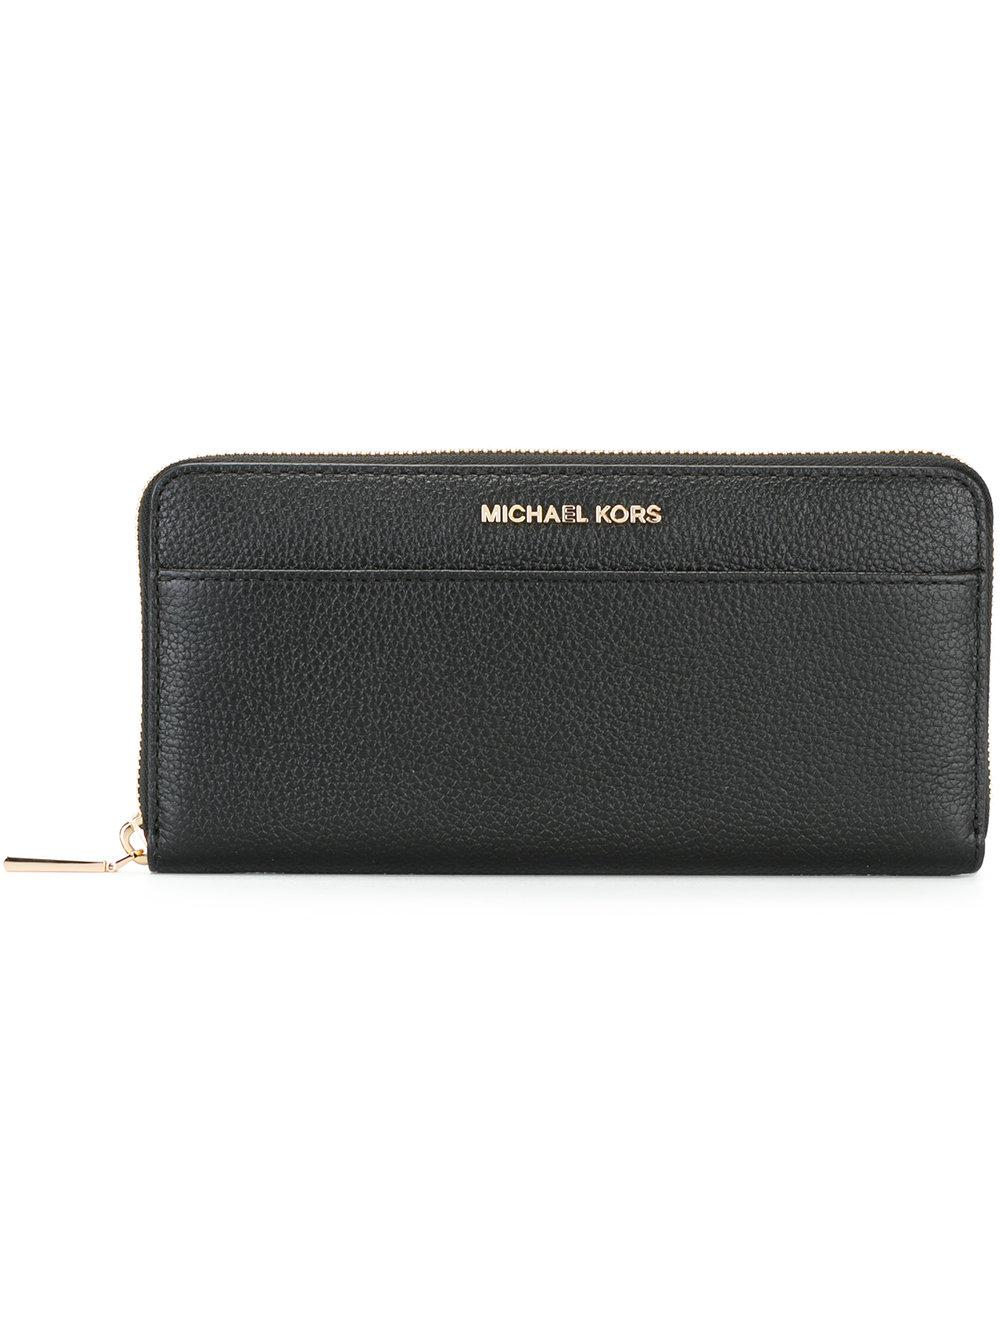 a6d2b65014ce MICHAEL Michael Kors Mercer Leather Wallet in Black - Save 42% - Lyst